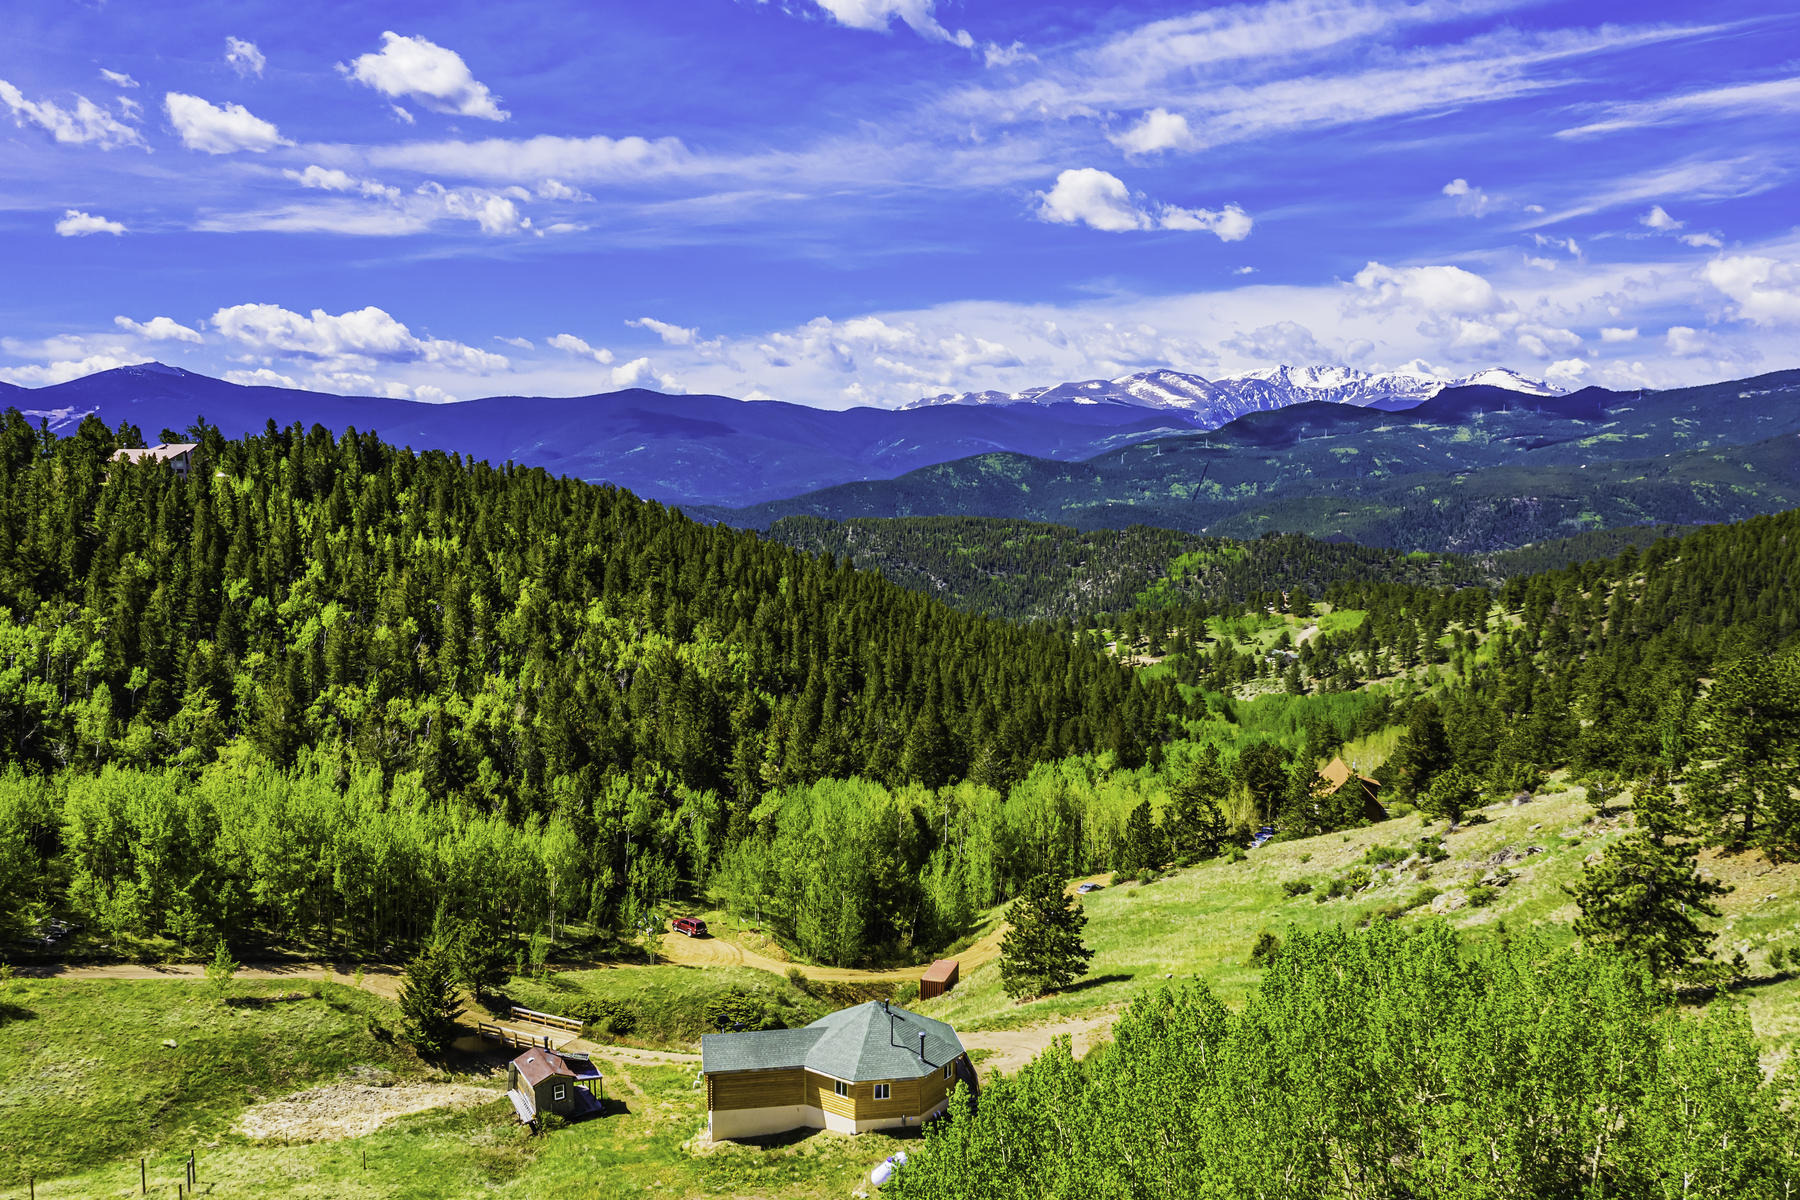 Single Family Homes for Sale at Off the grid, Away from it all, and Out of this World Views! 481 Red Tail Ridge Road Idaho Springs, Colorado 80452 United States